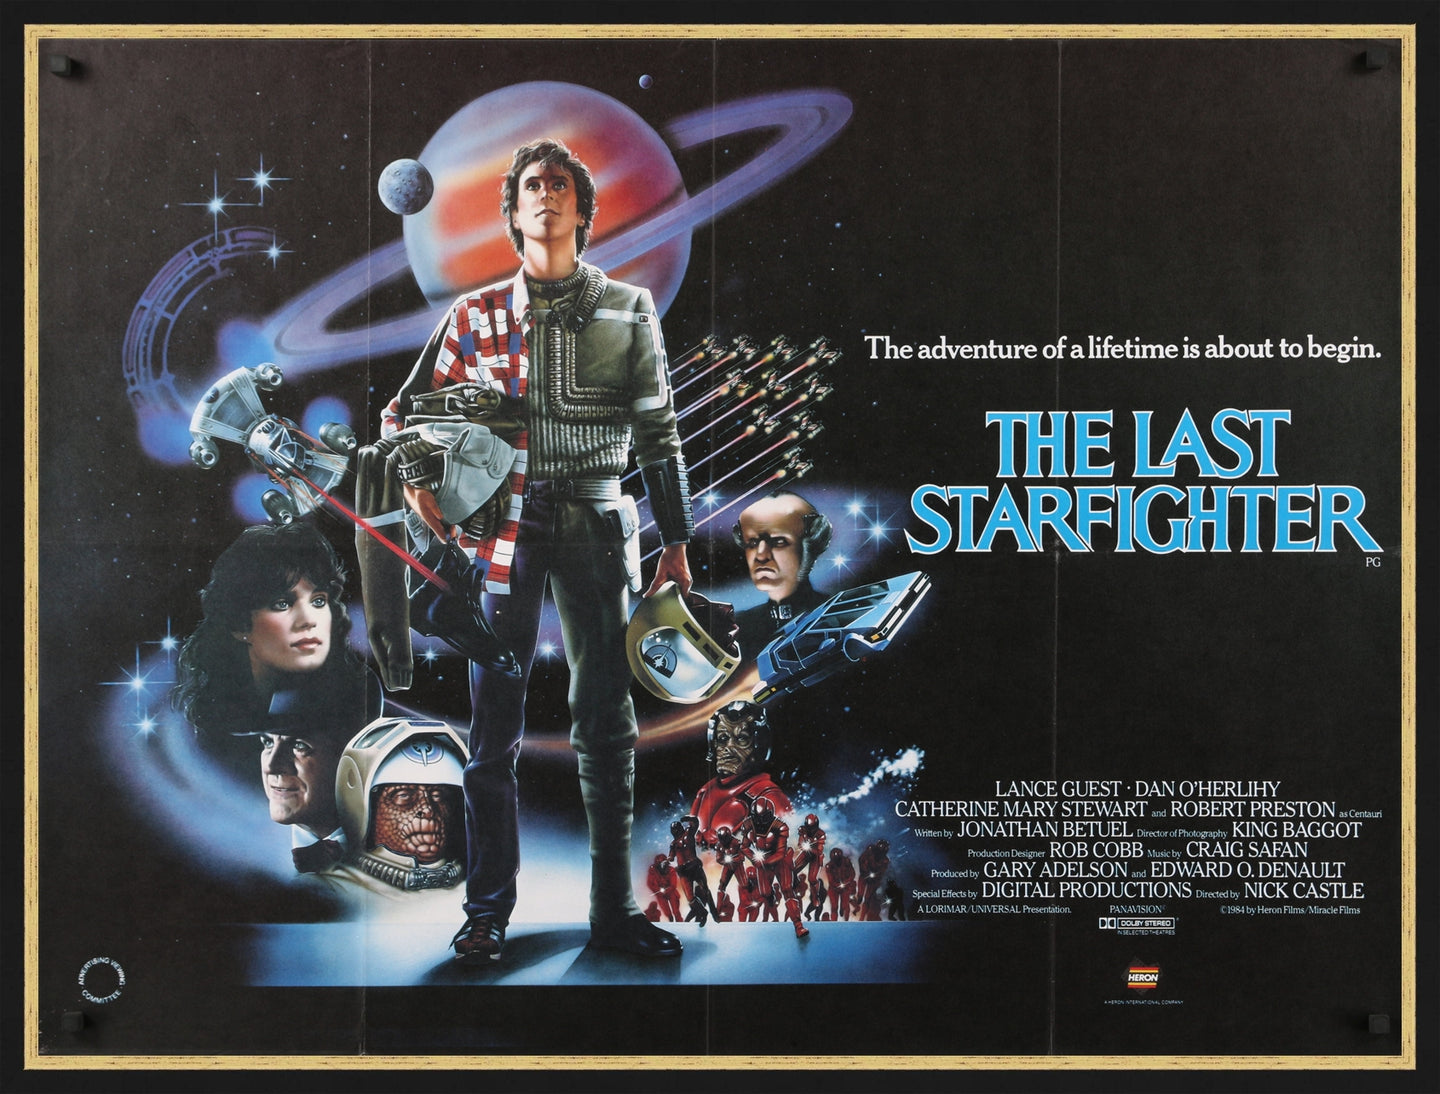 An original British Quad movie poster for the film The Last Starfighter